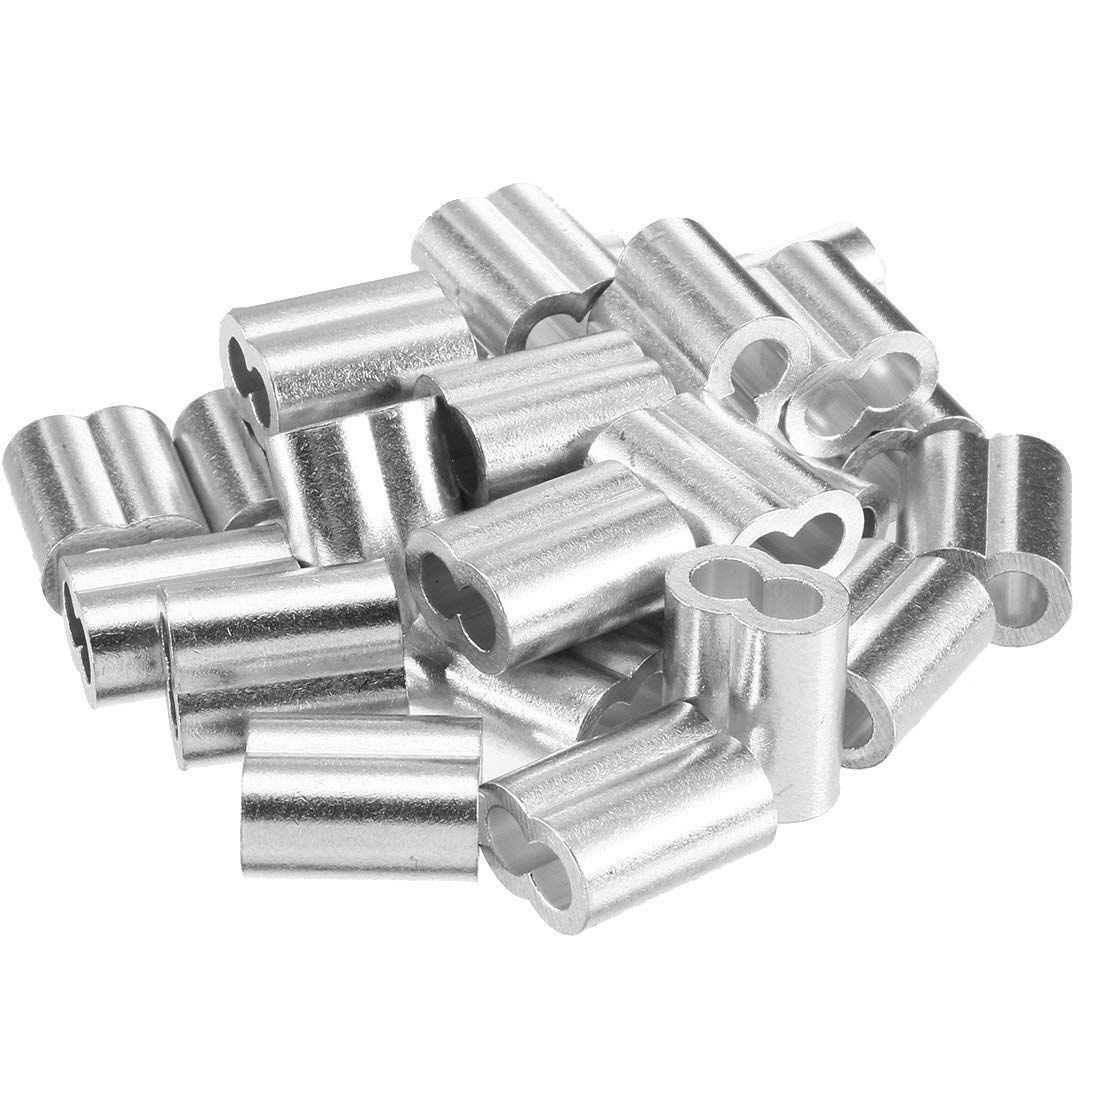 TOOGOO 5/16 inch (8mm) Diameter Wire Rope Aluminum Sleeves Clip Fittings Cable Crimps 20pcs